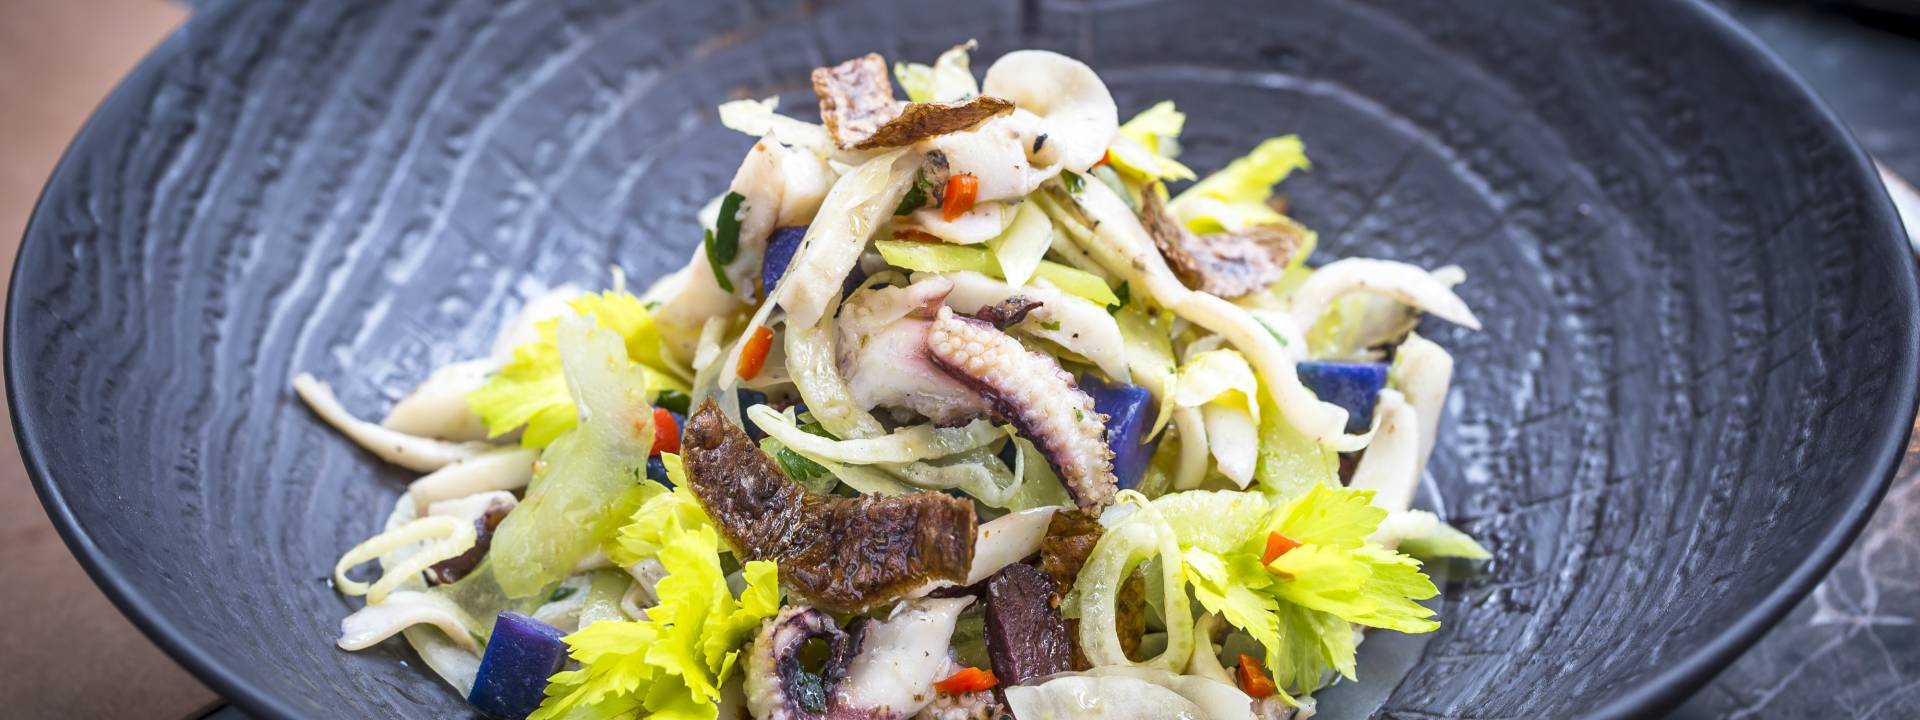 Cuttlefish celery vitelottepotatoesblack olives and lemon dressing 3